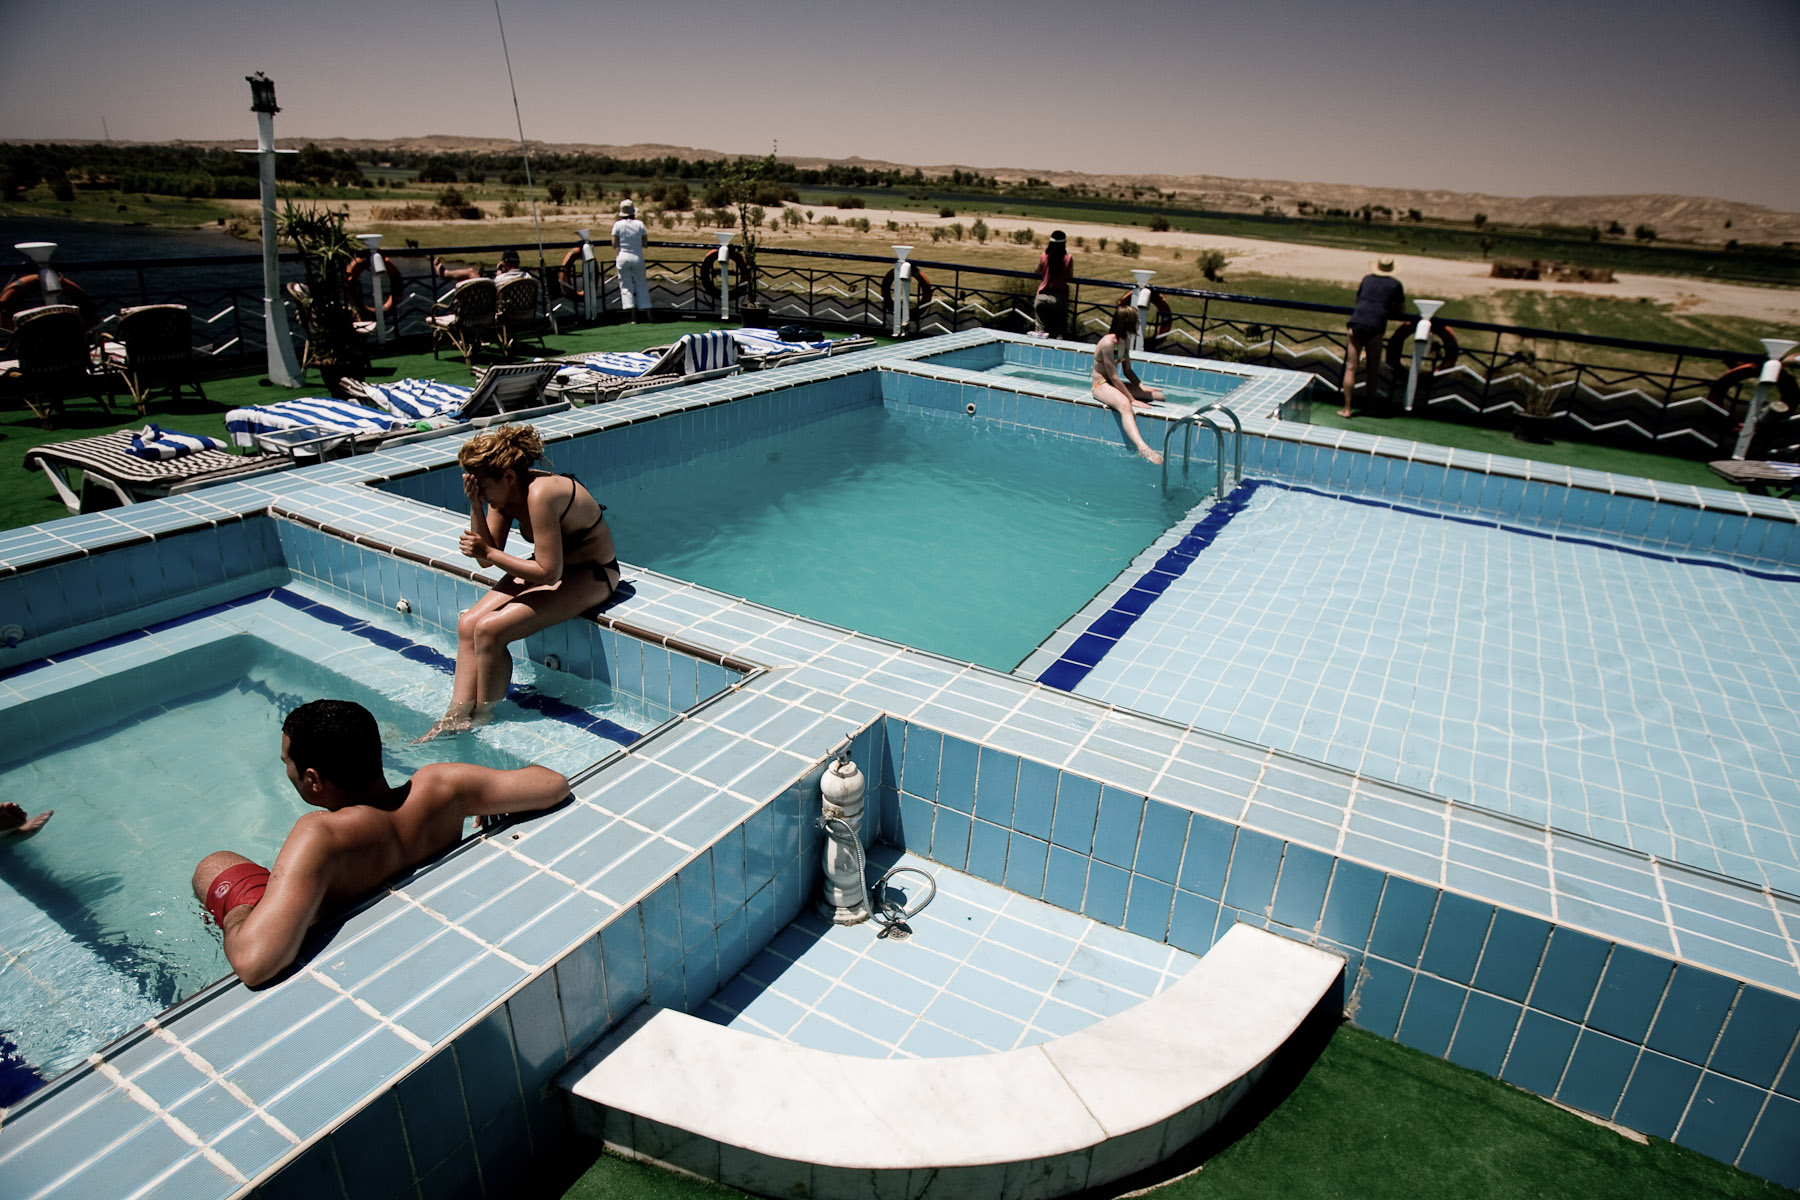 Tourists bathe in a pool on one of many cruiseships on the Nile on April 30, 2008. Ironically, the Nile is more or less too polluted to bathe in it safely.